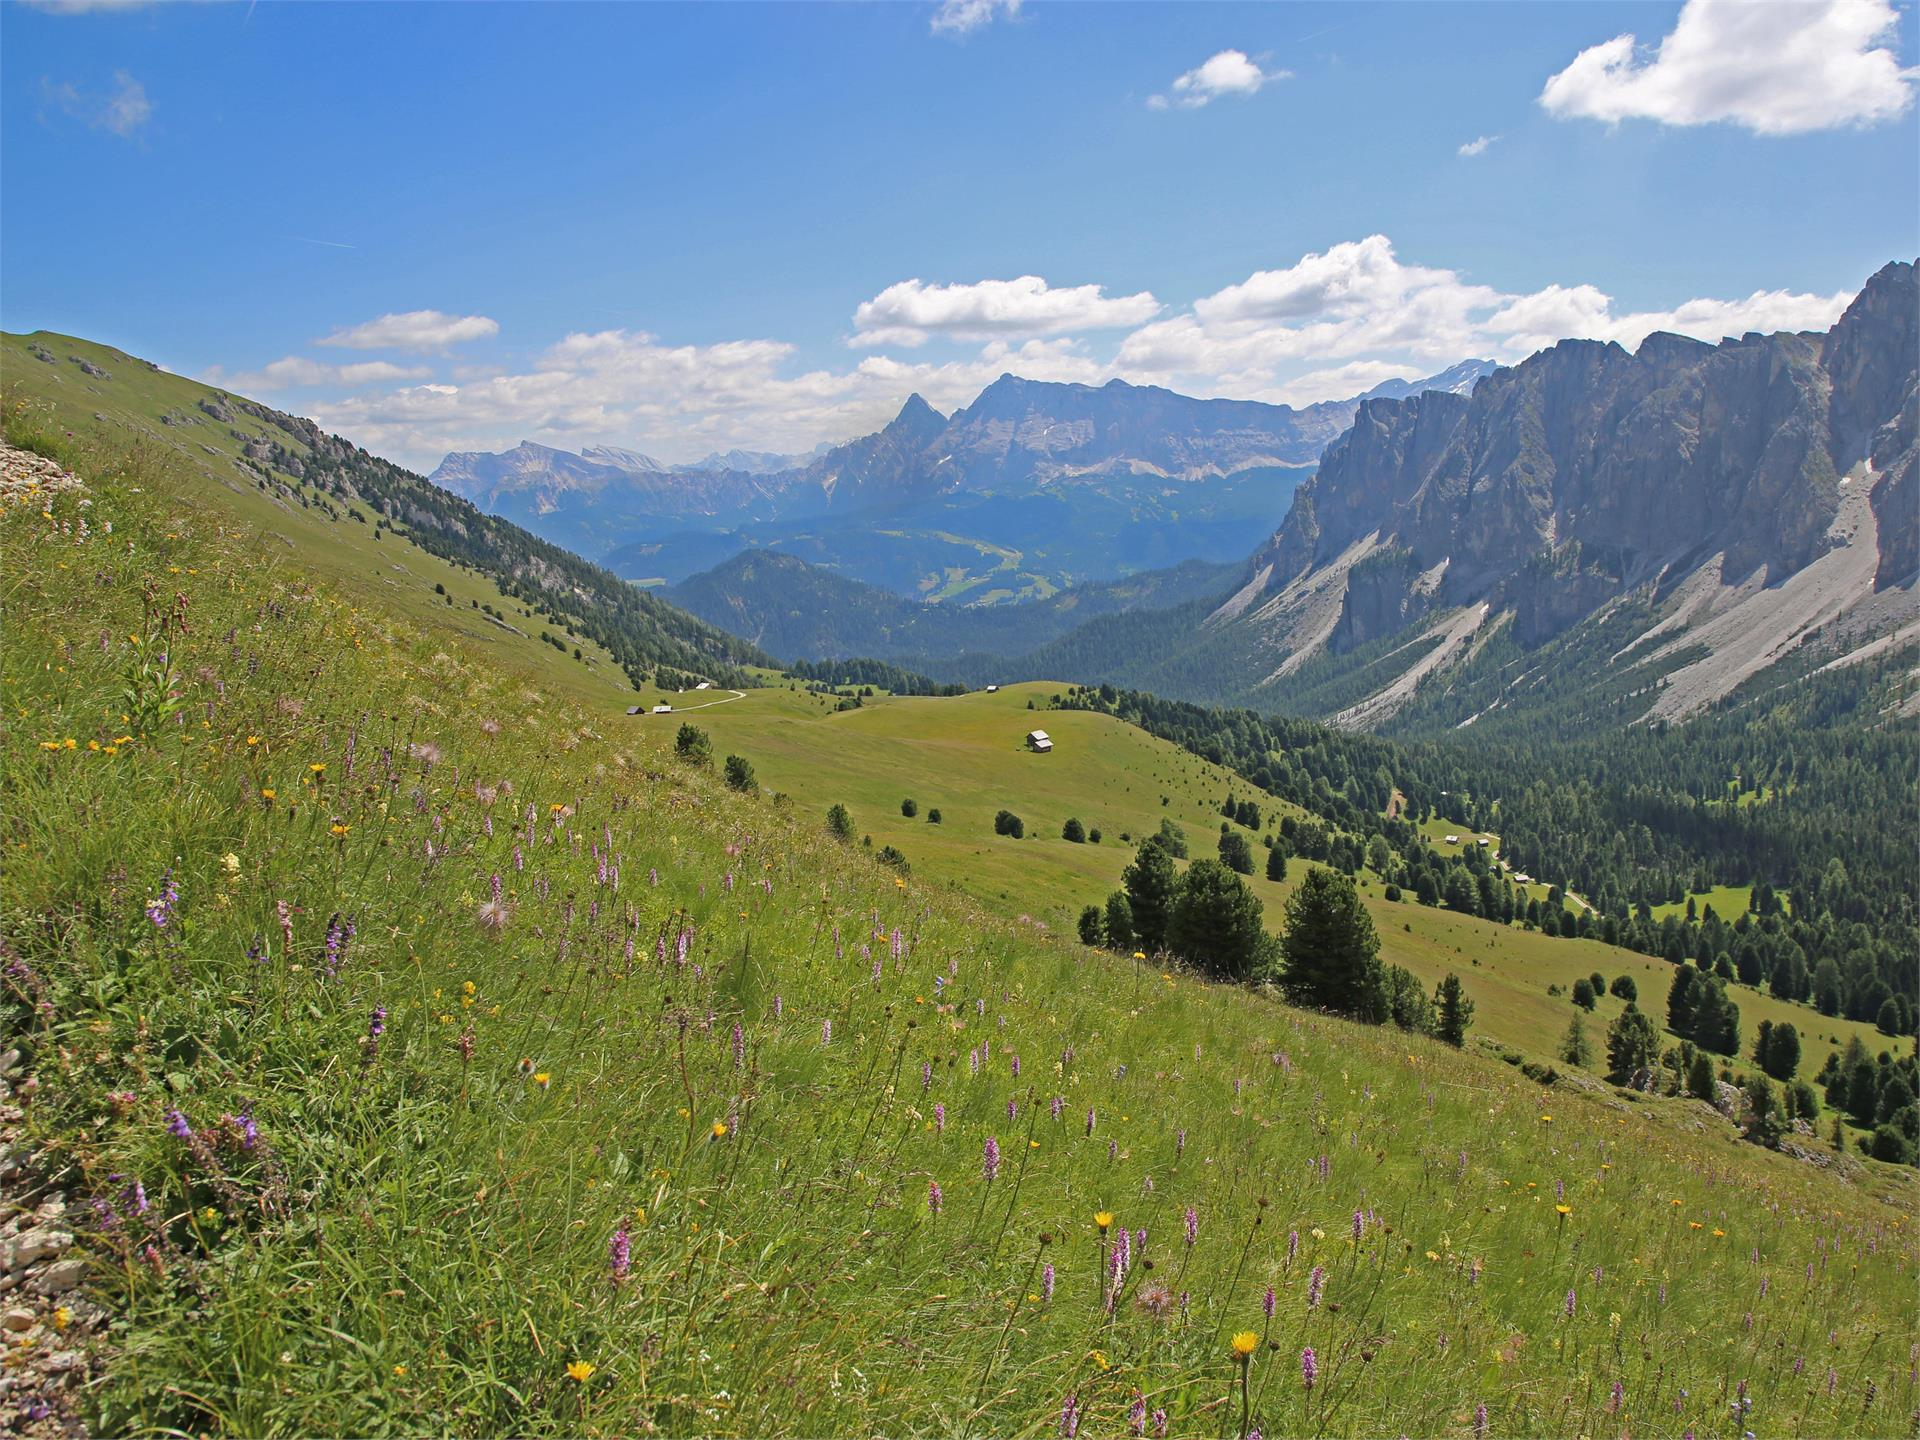 The green mountain pastures of Medalghes